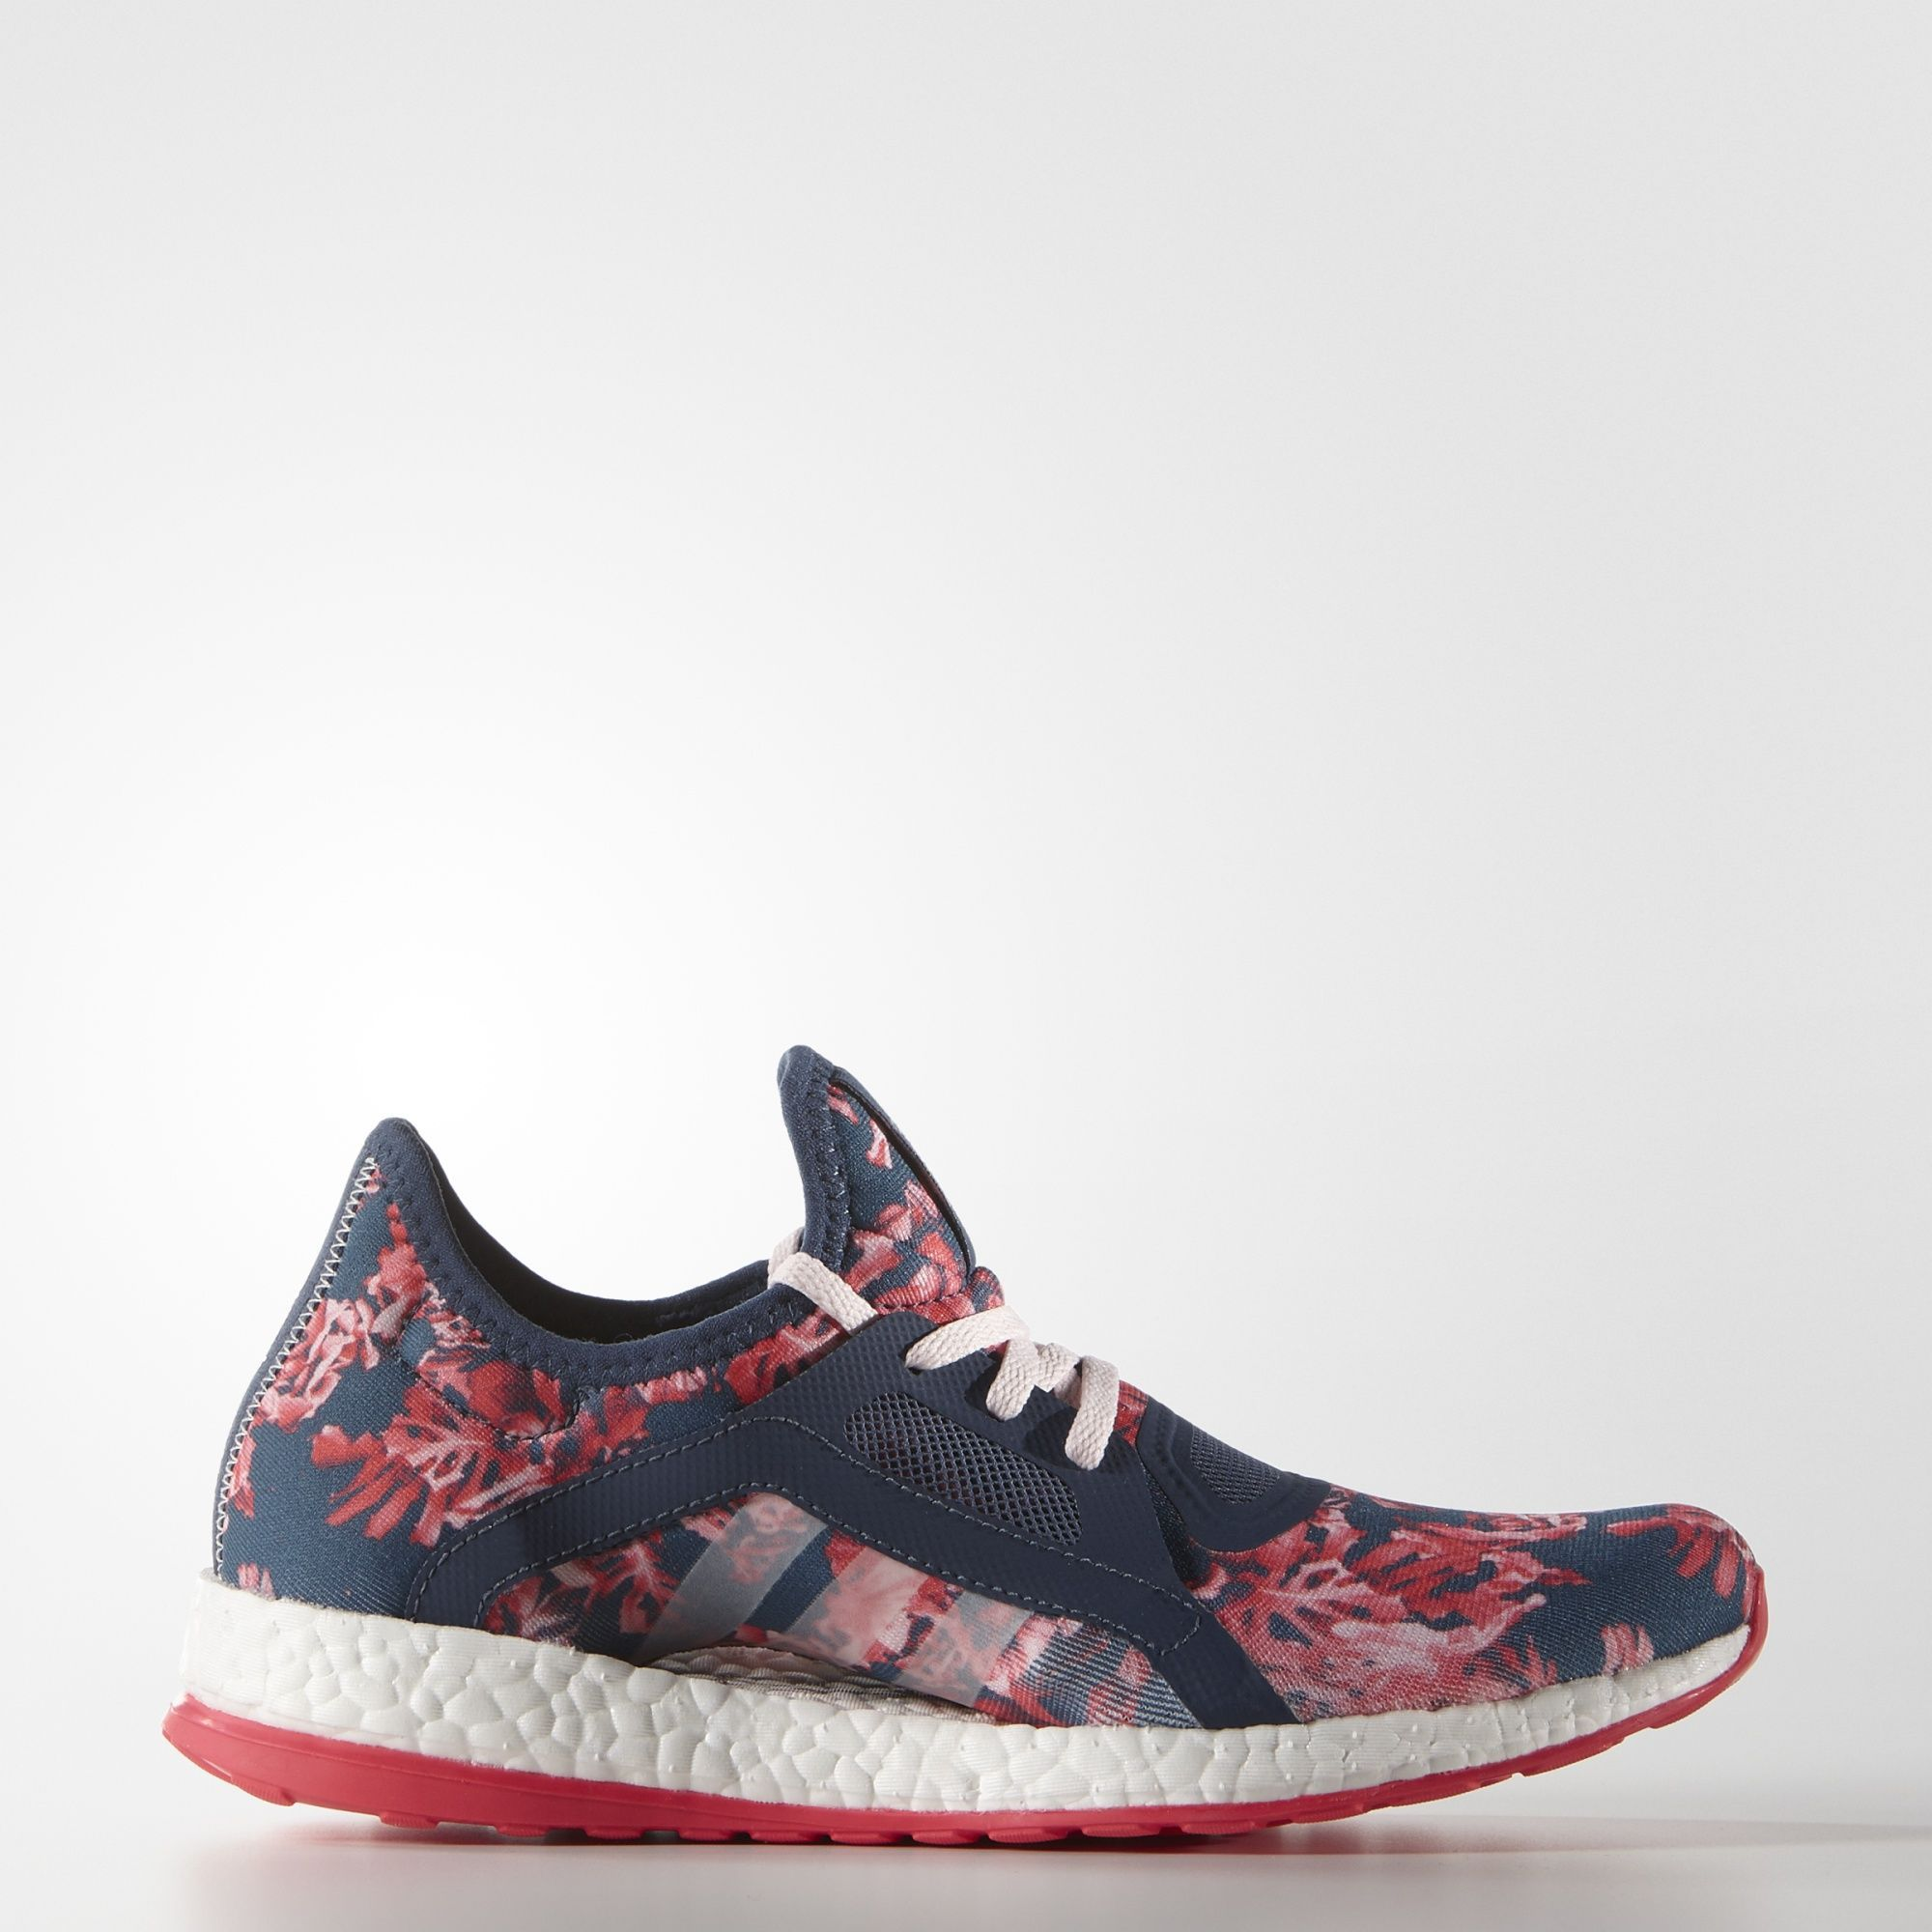 promo code aec46 40c8a adidas - Pure Boost X Shoes